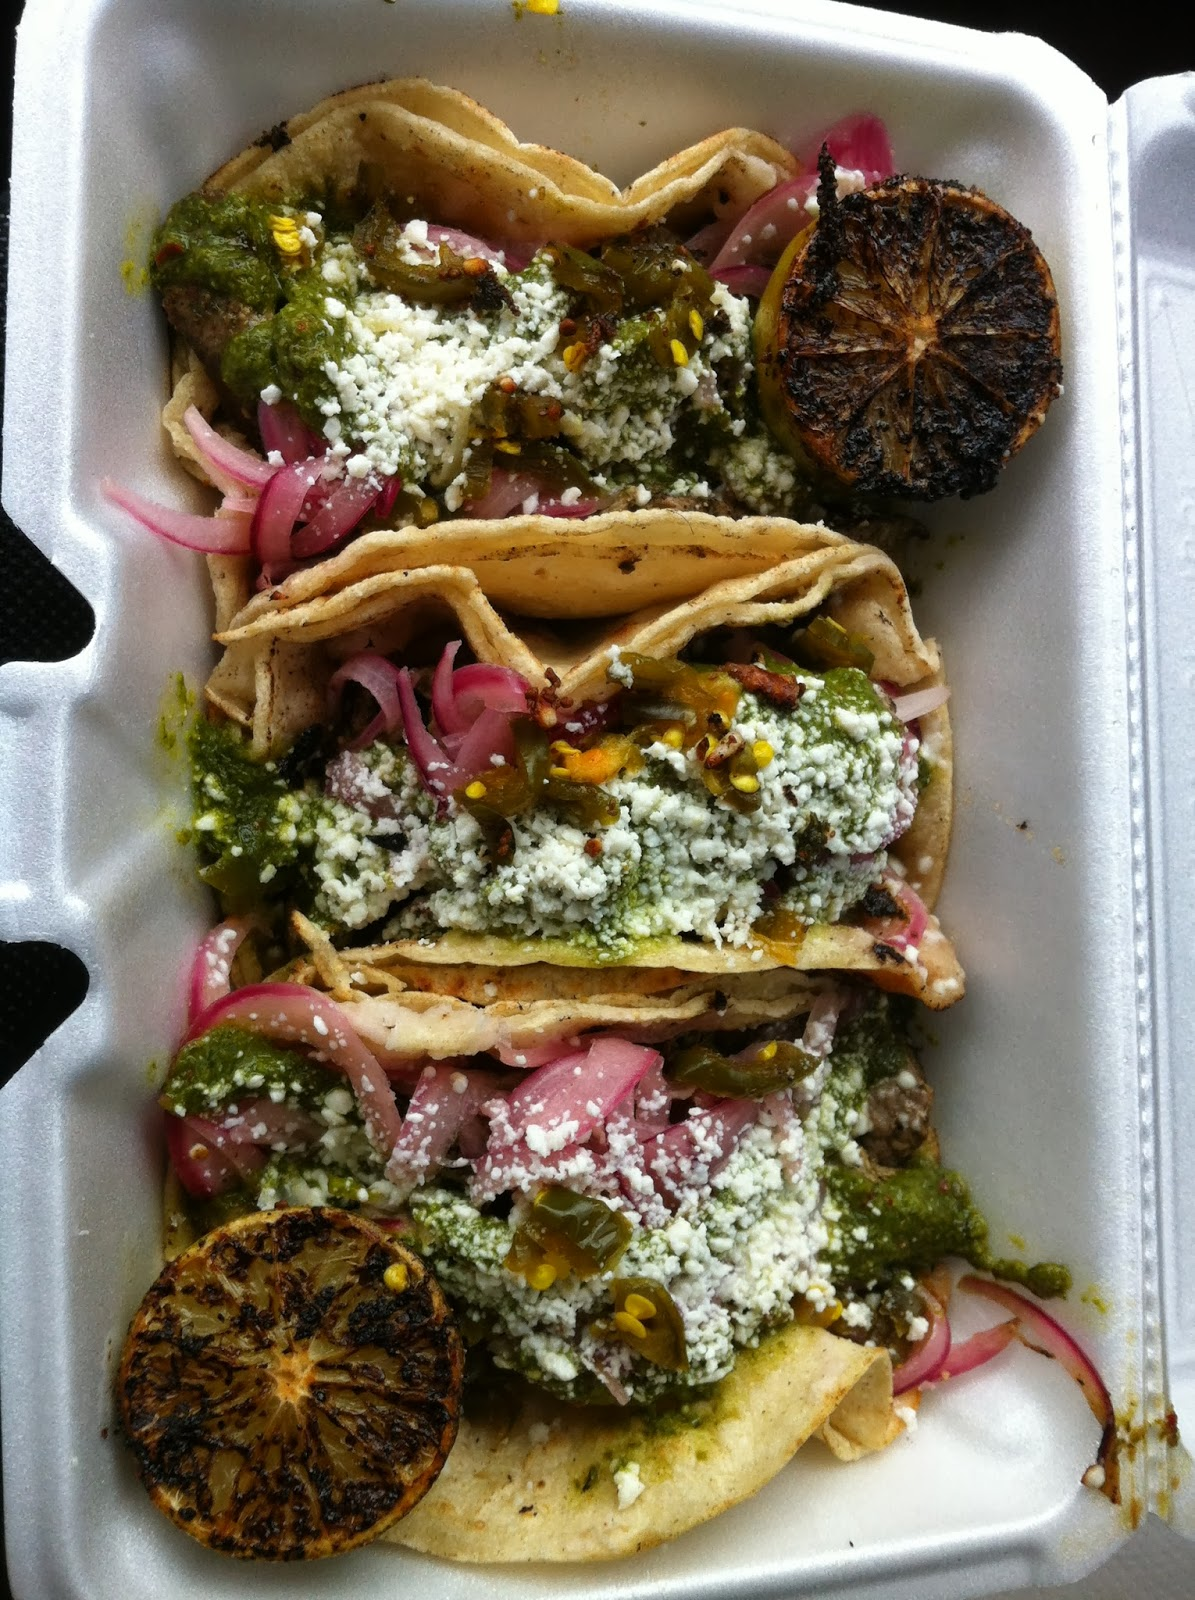 Food Punk Dylan S Candy Bar A Grown Up S Candy Store: Houston Food Truck Reviews: Gastro Punk